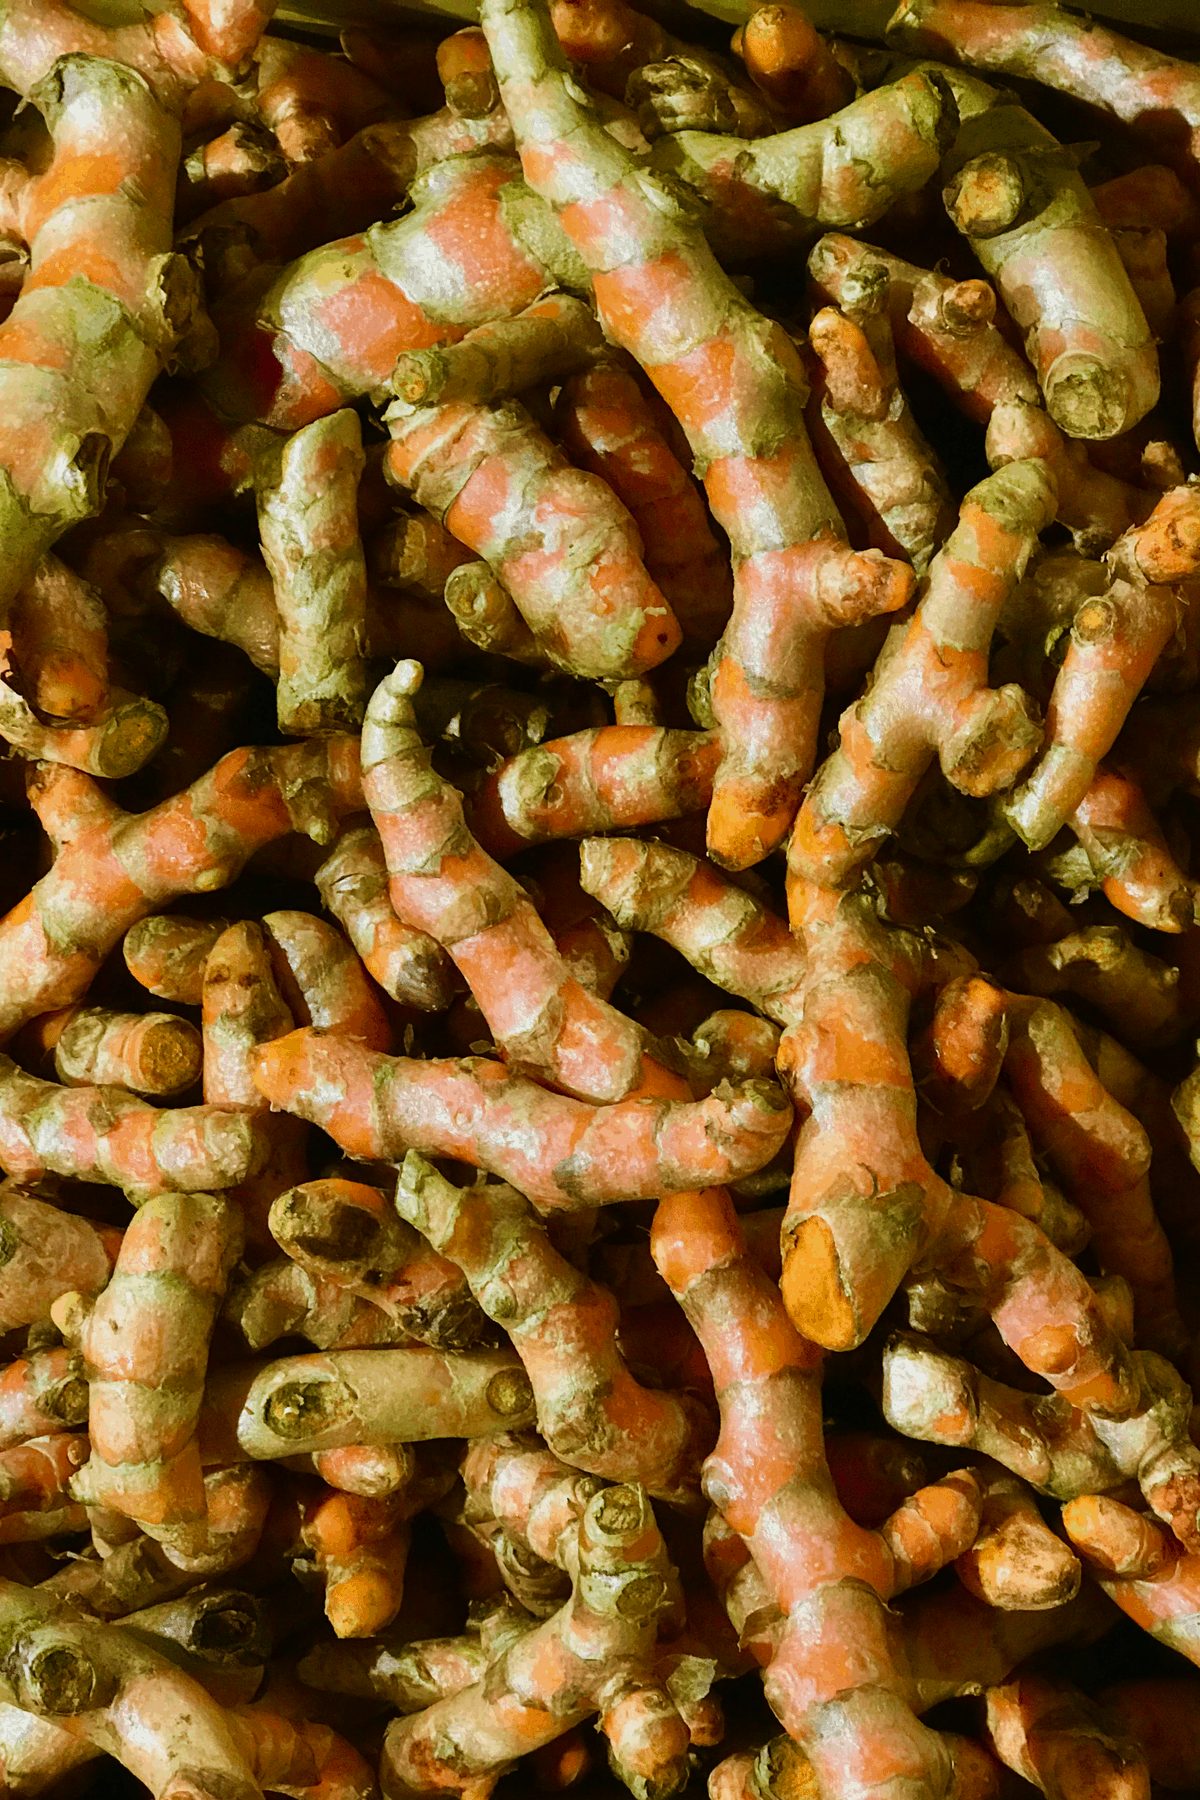 Turmeric roots pile